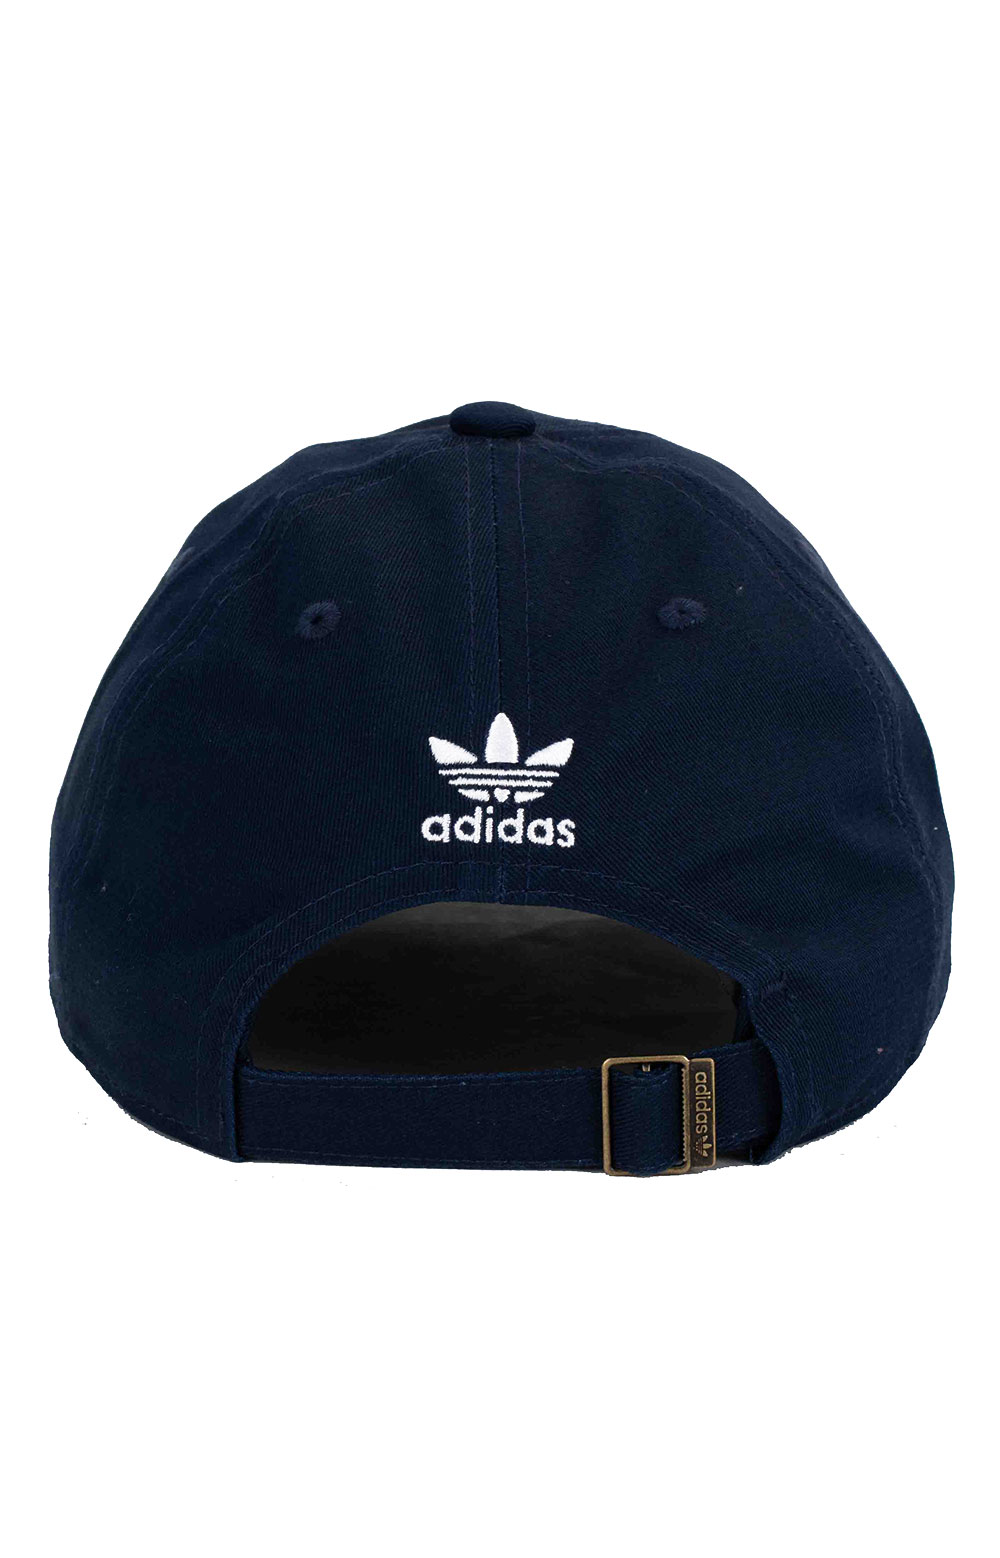 Originals Relaxed Strap-Back Hat - Collegiate Navy 3